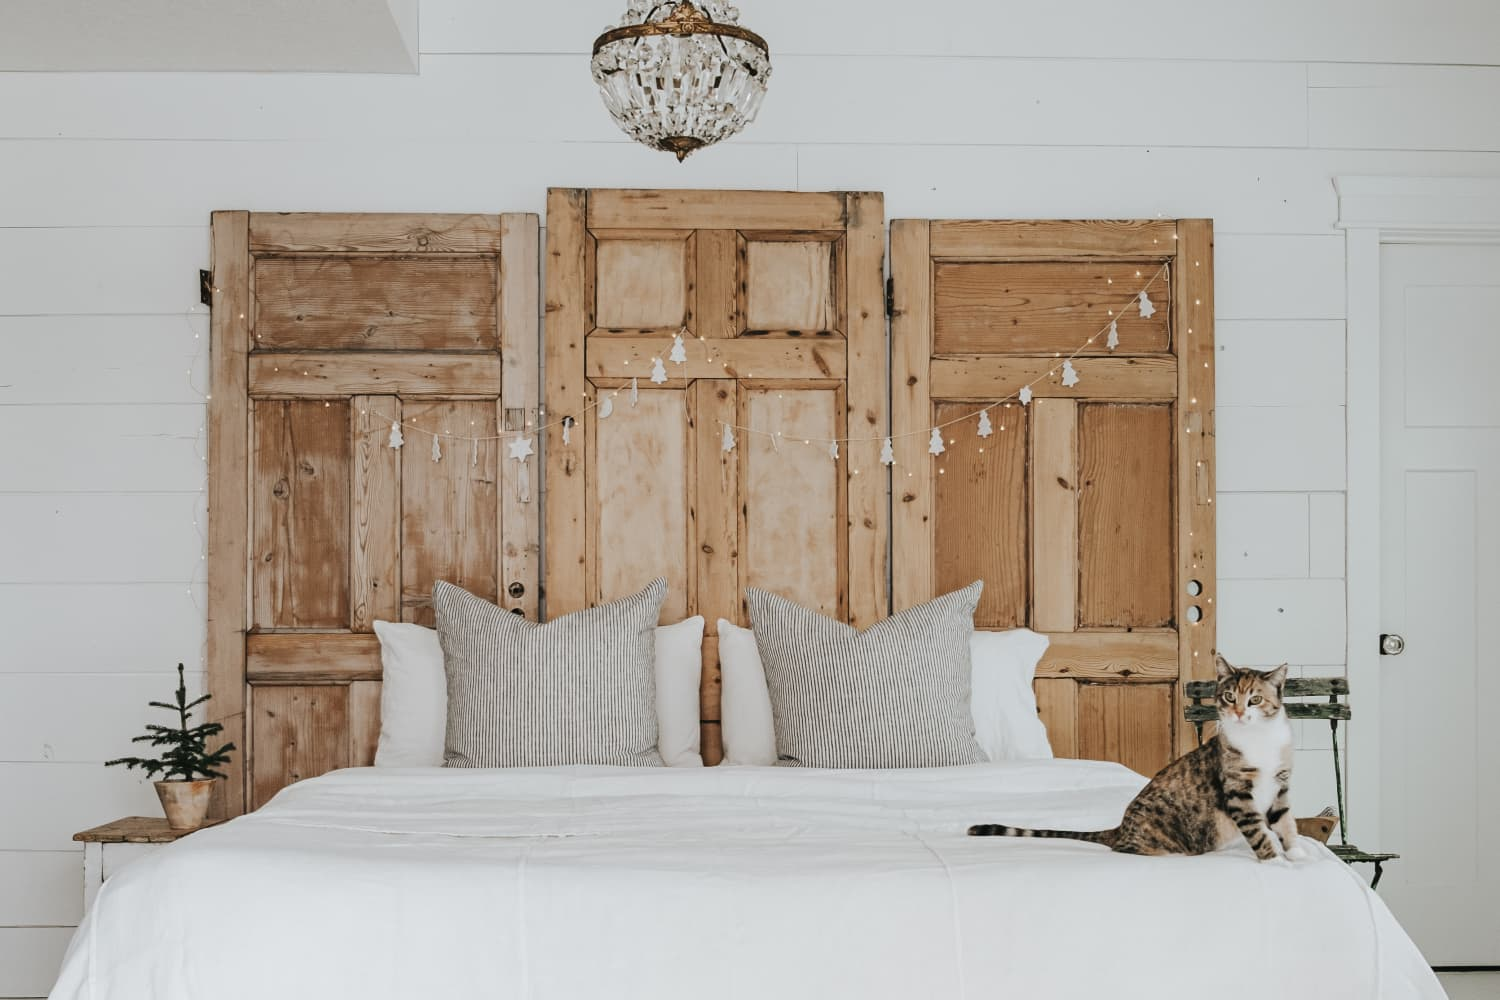 23 Dreamy DIY Headboards to Suit Every Style from Minimalist to Farmhouse